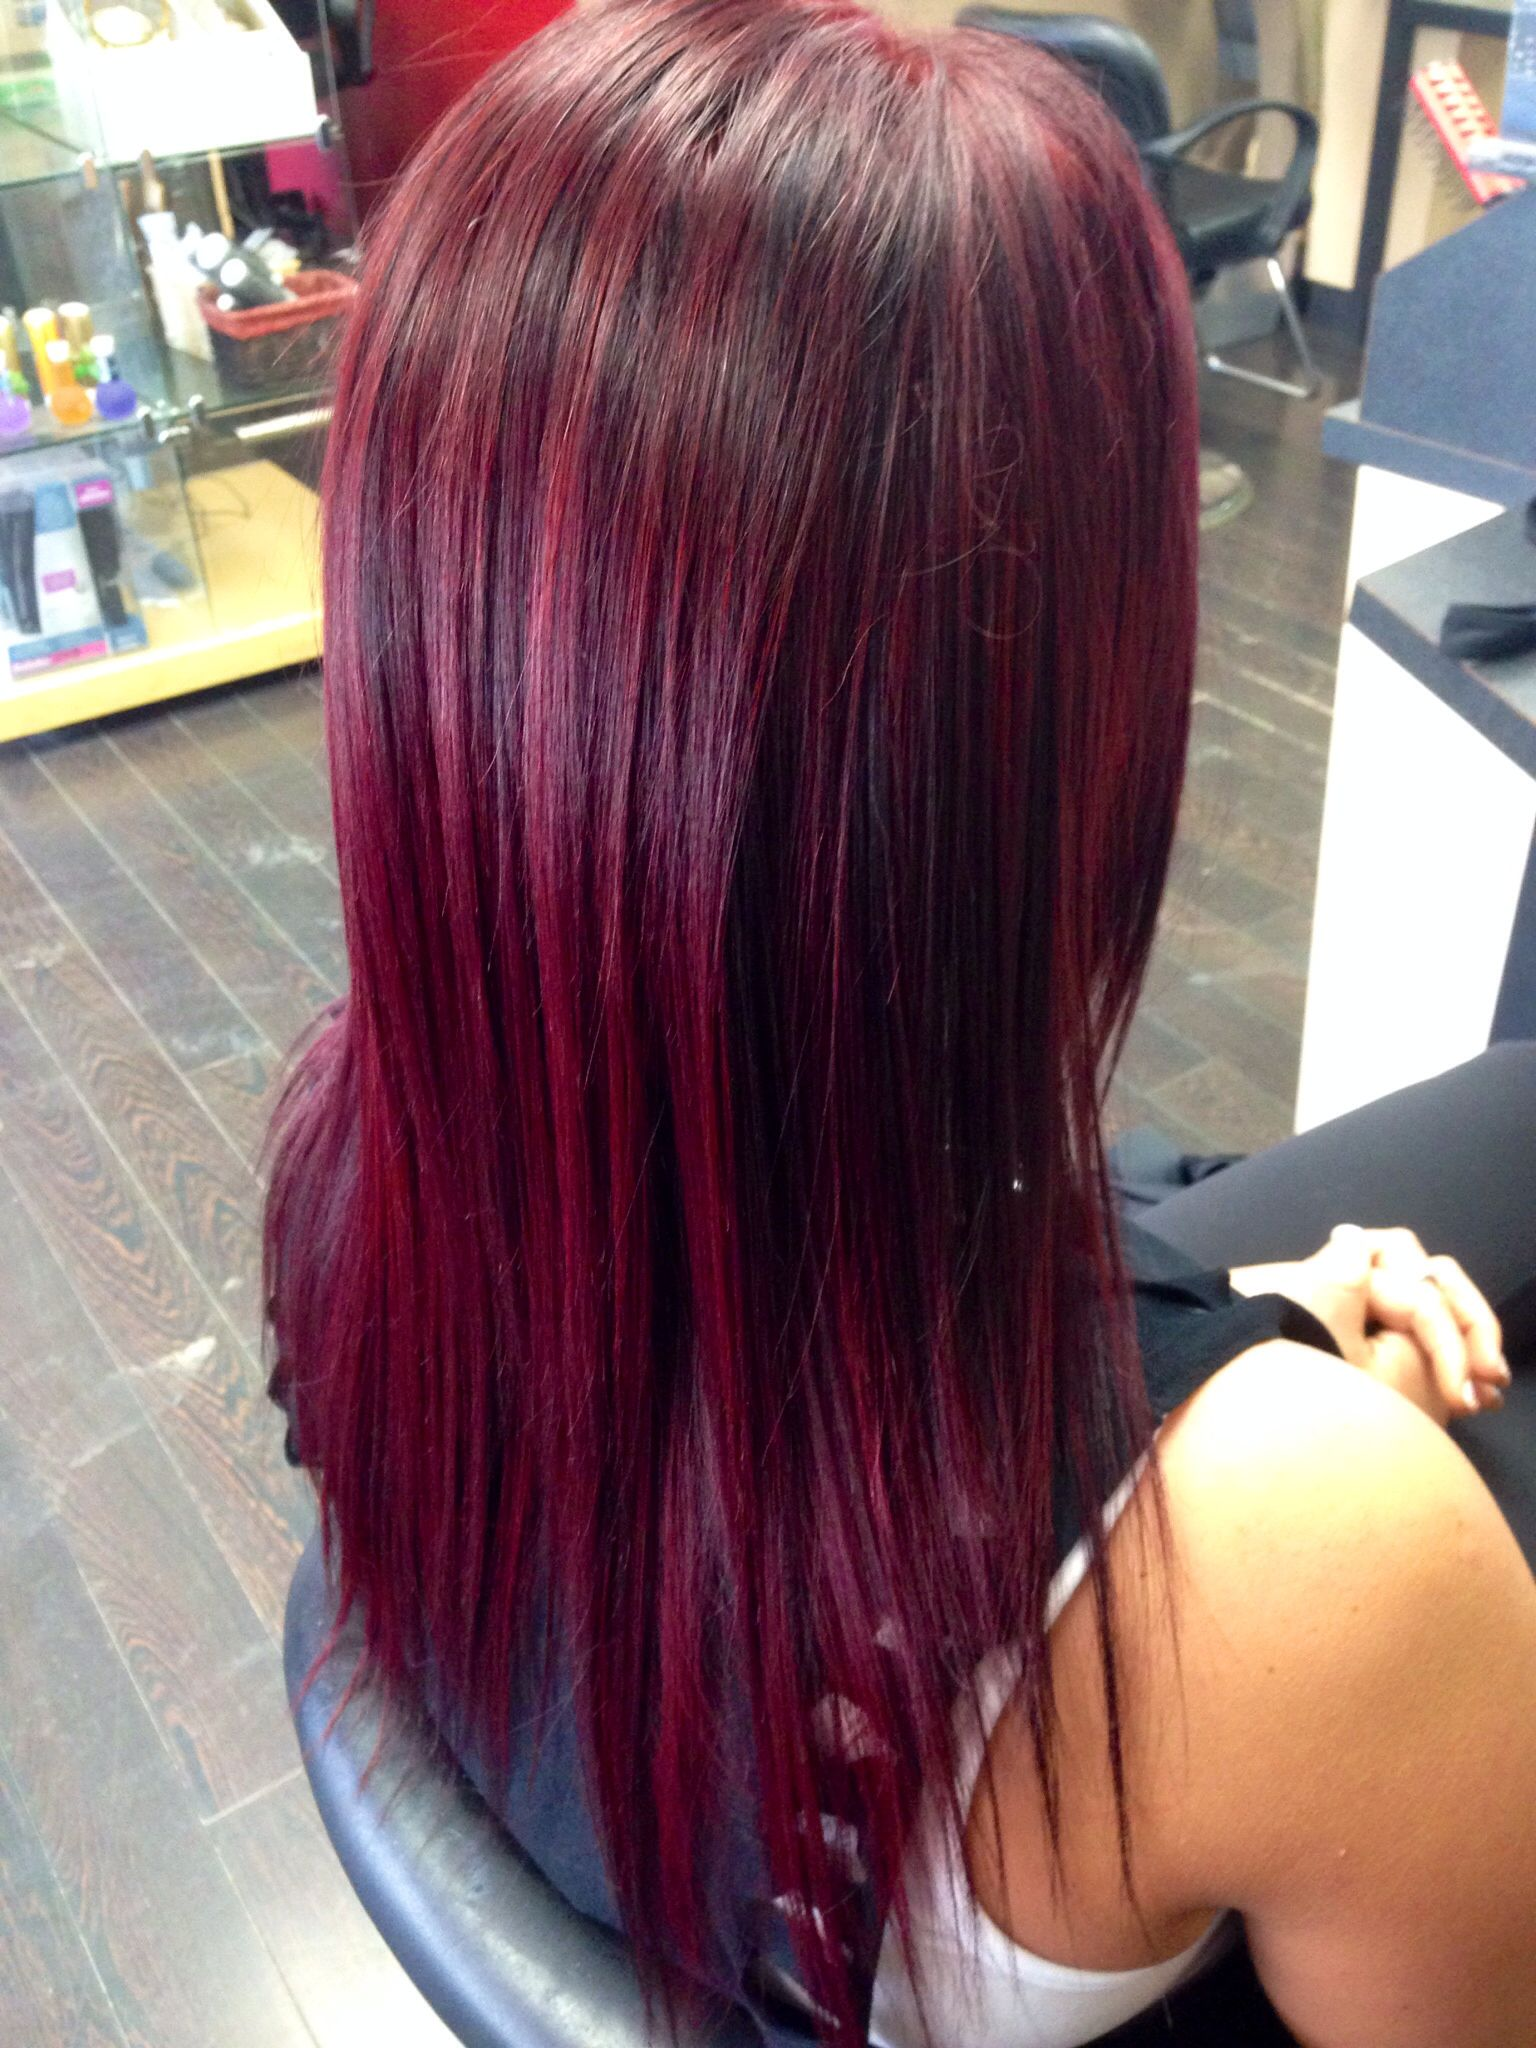 Vibrant red violet hair using Schwarzkopf colors | Hair ...